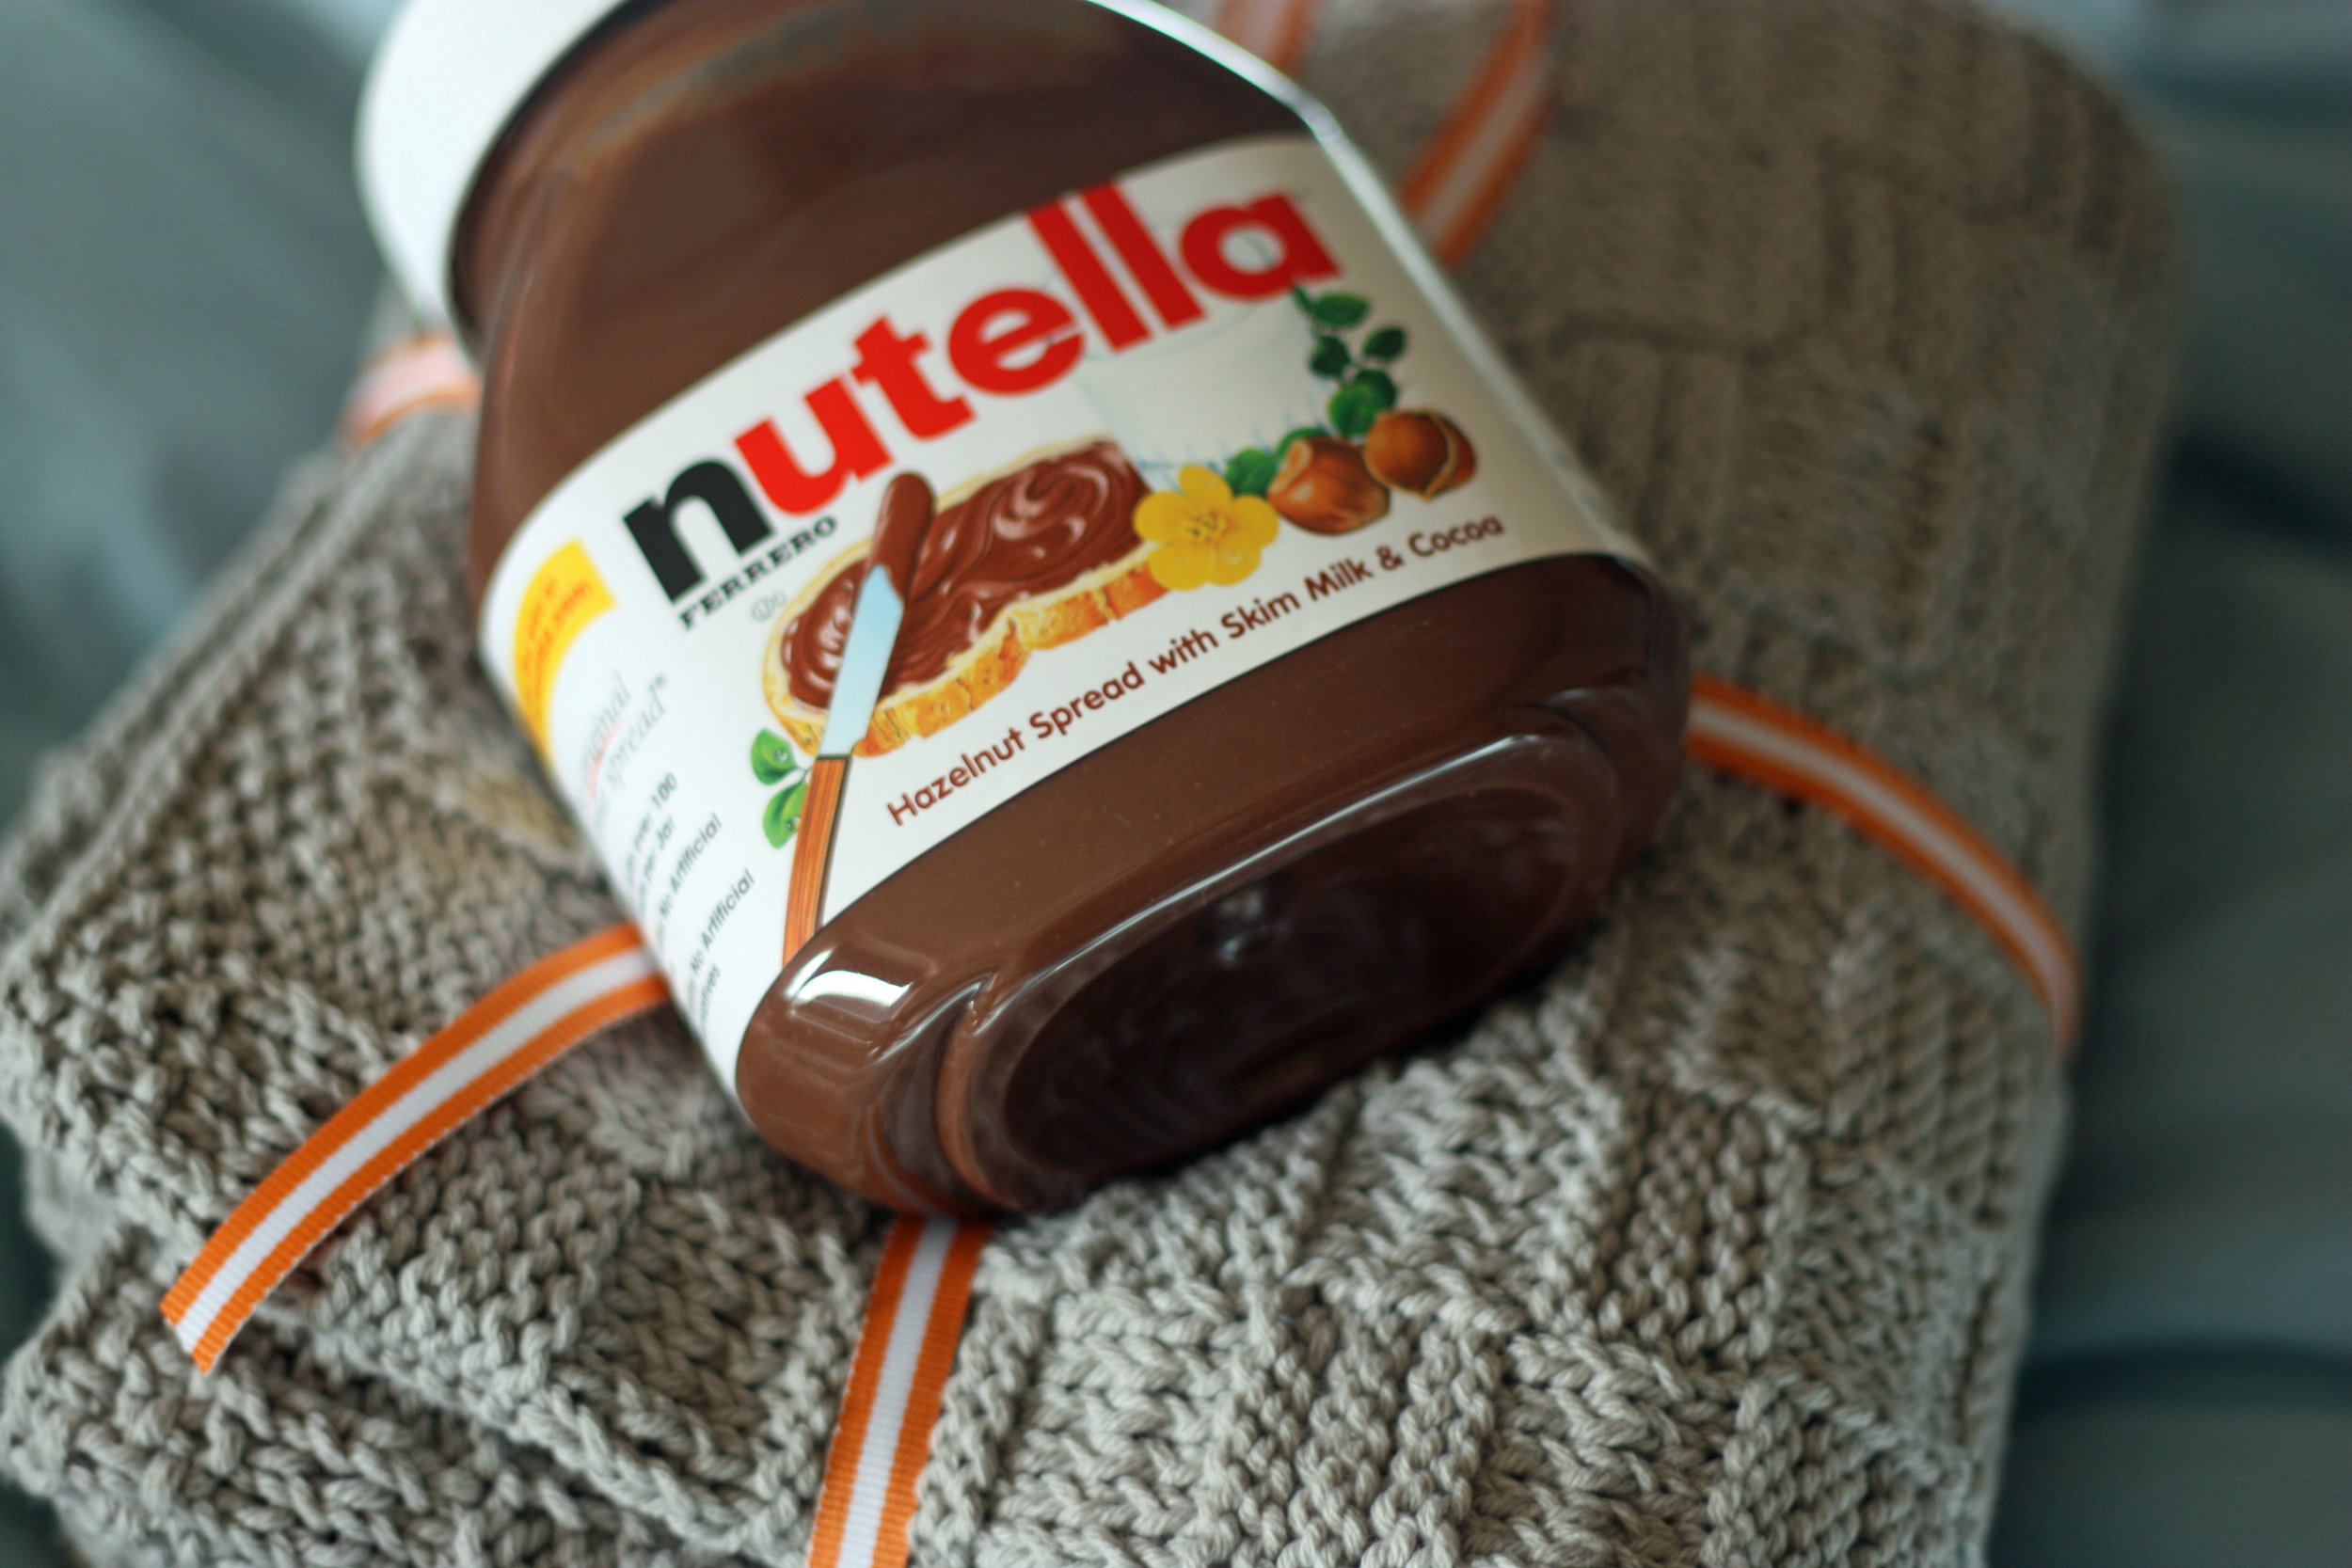 Nutella blanket